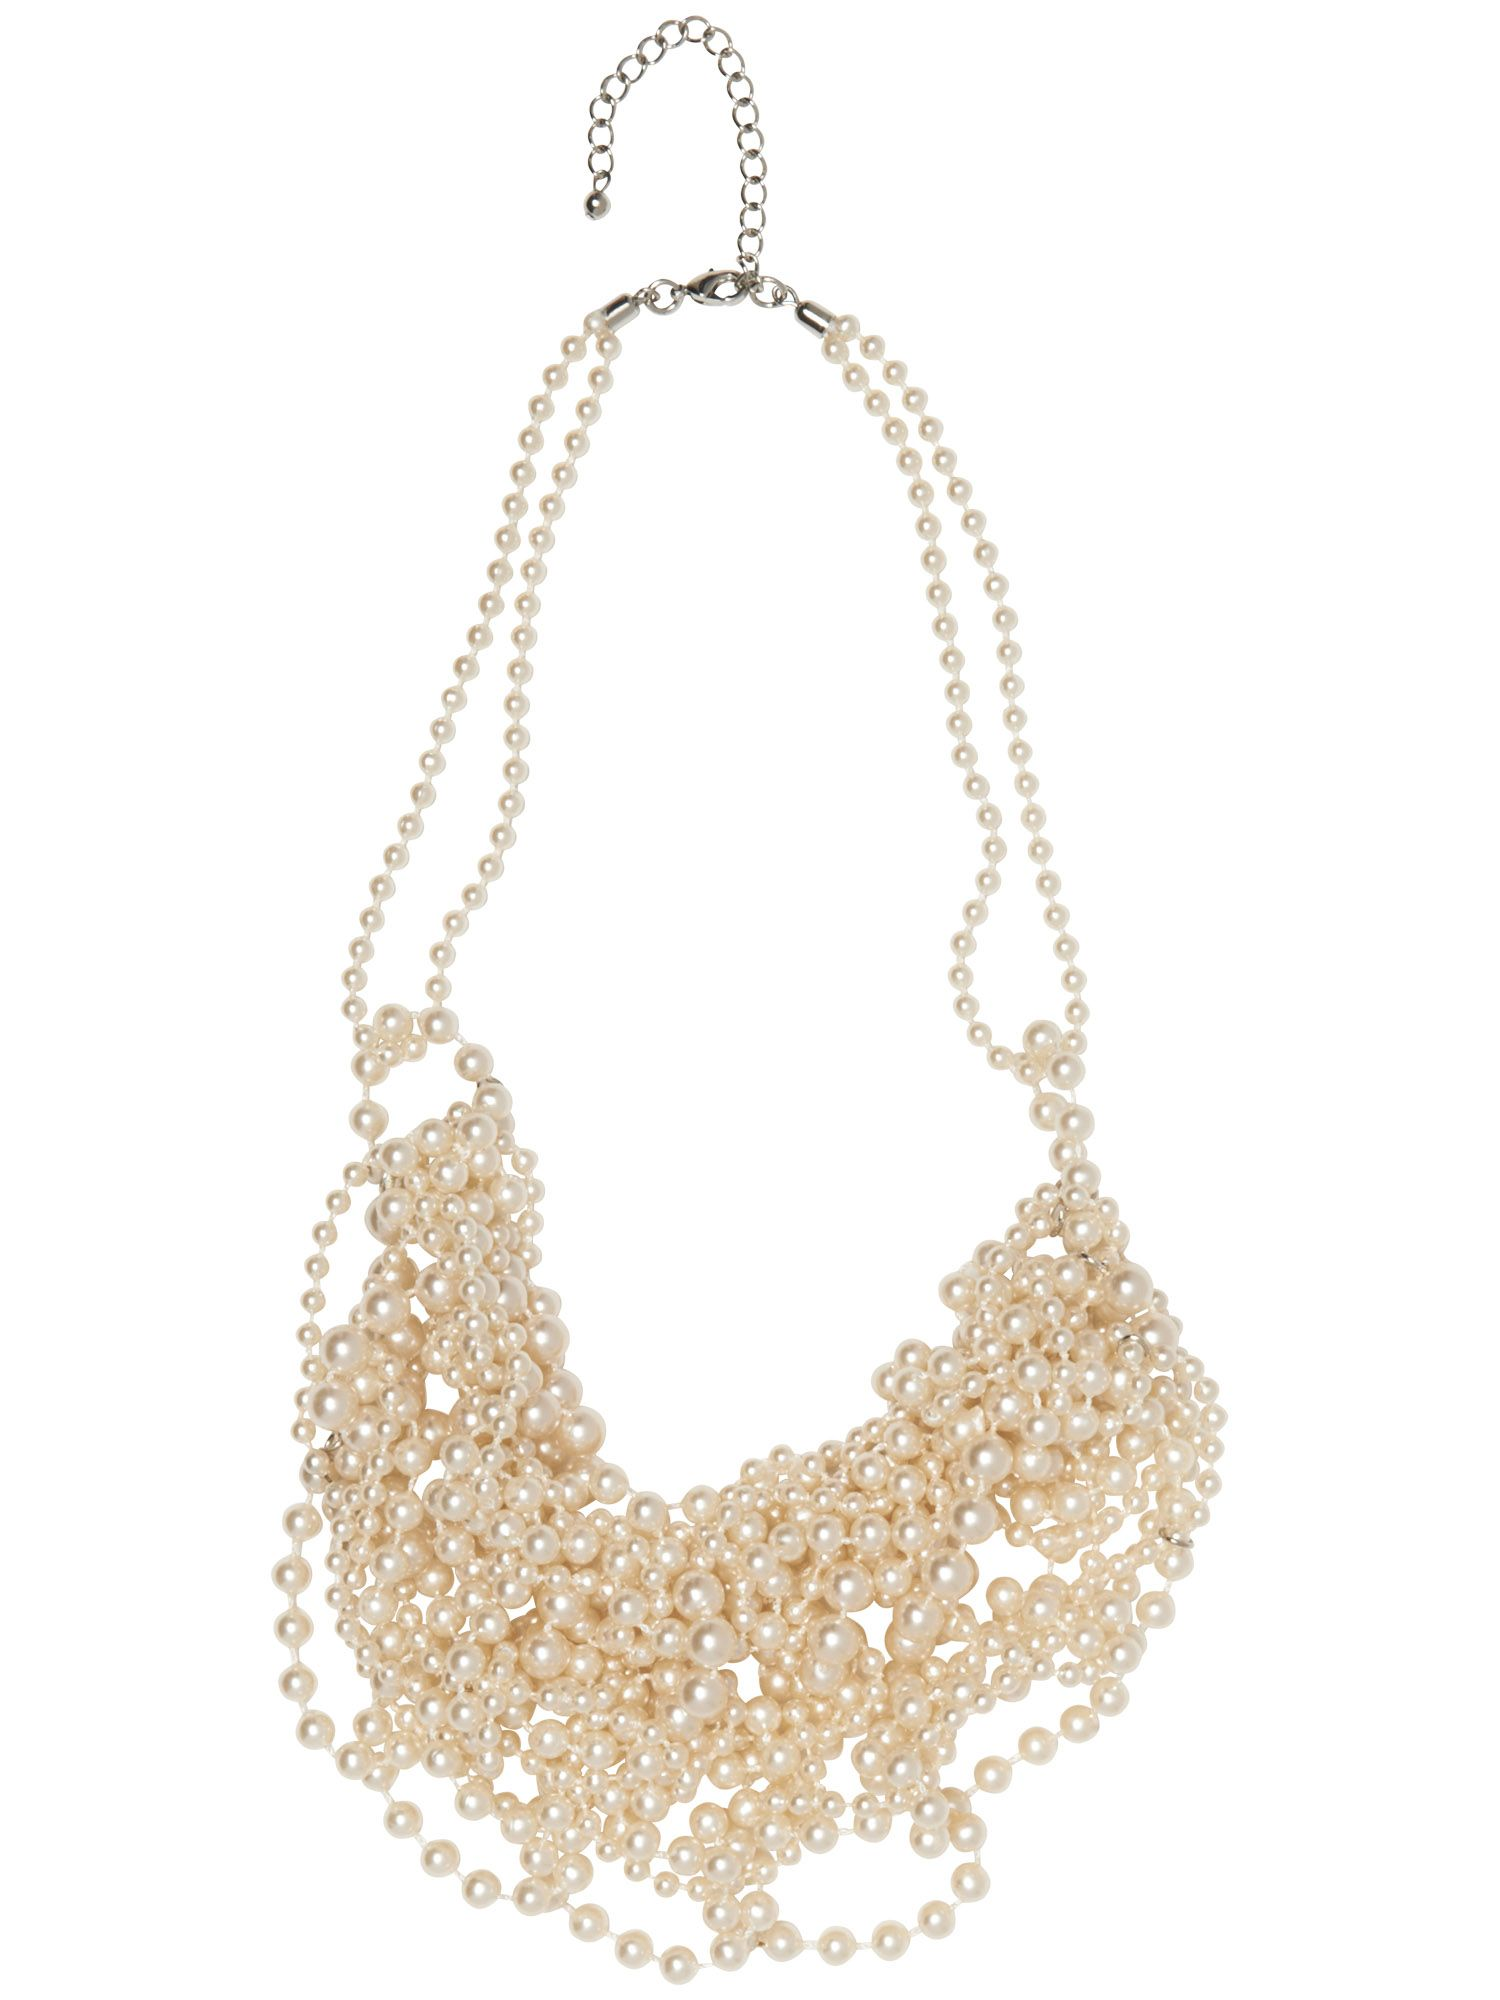 Leoni pearl necklace